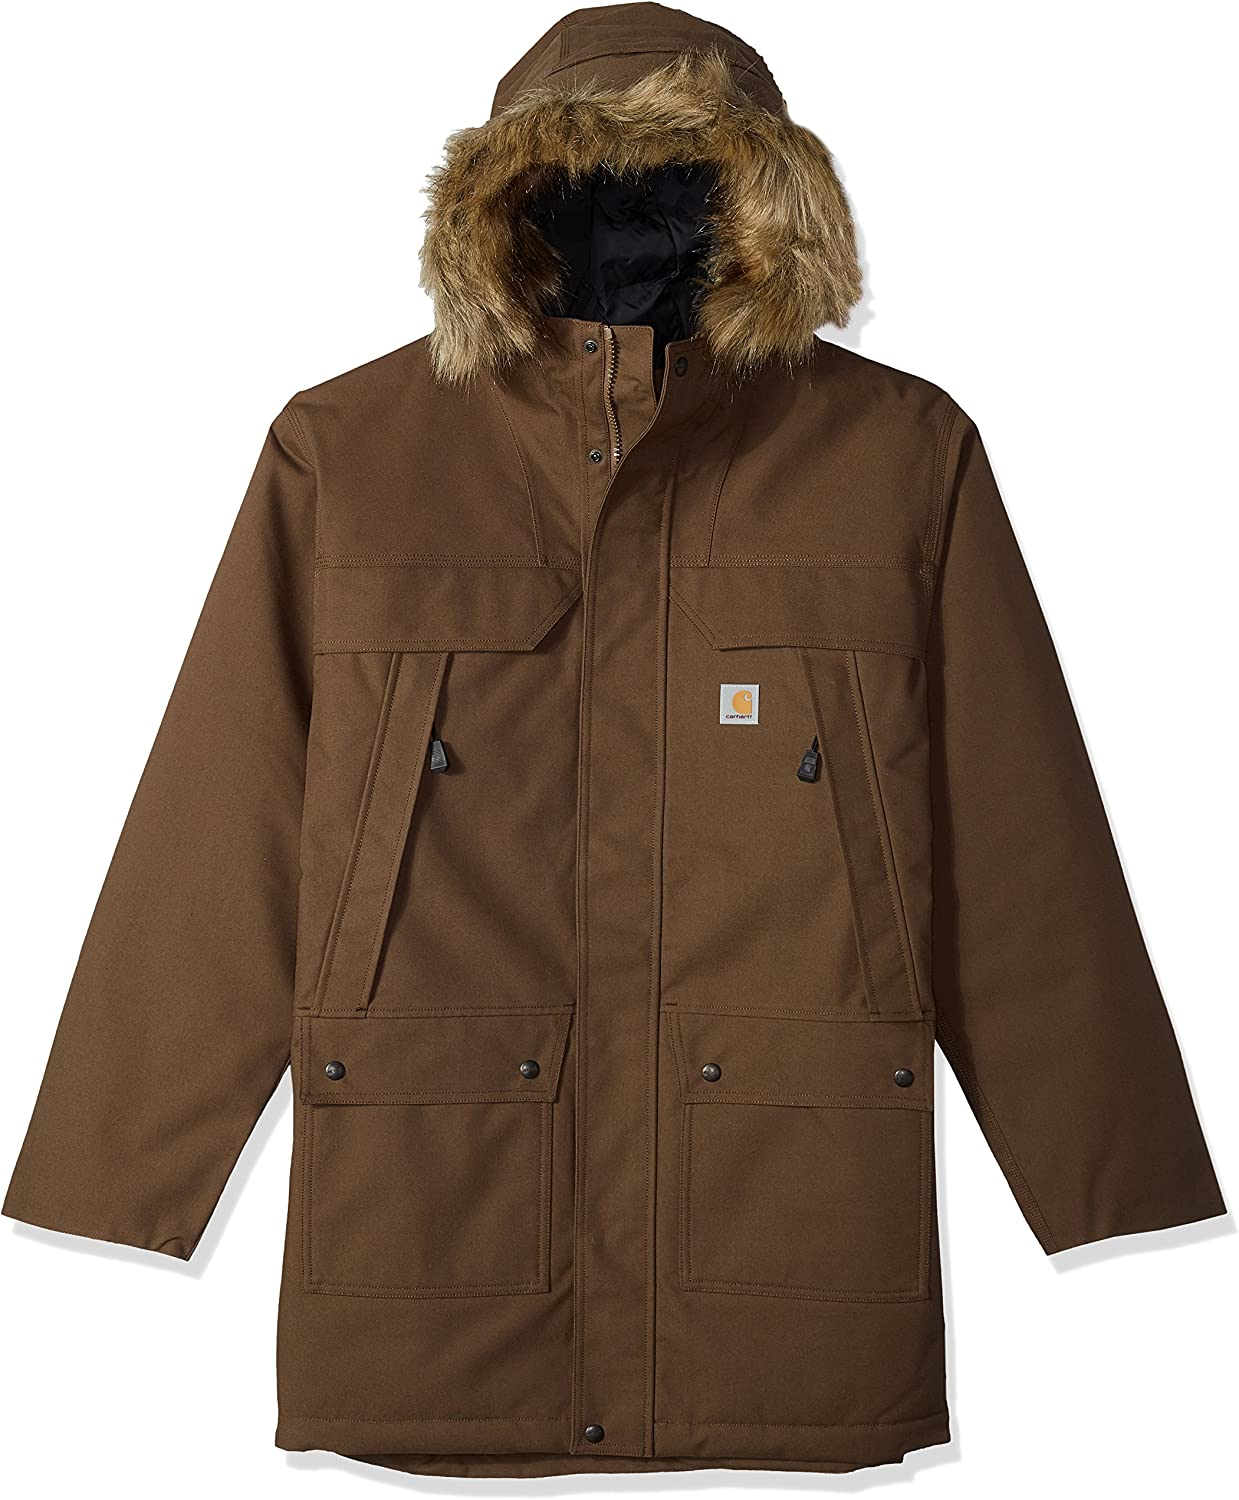 Max 64% OFF Carhartt Men's Big Tall Duck Quick Parka Outlet SALE Sawtooth